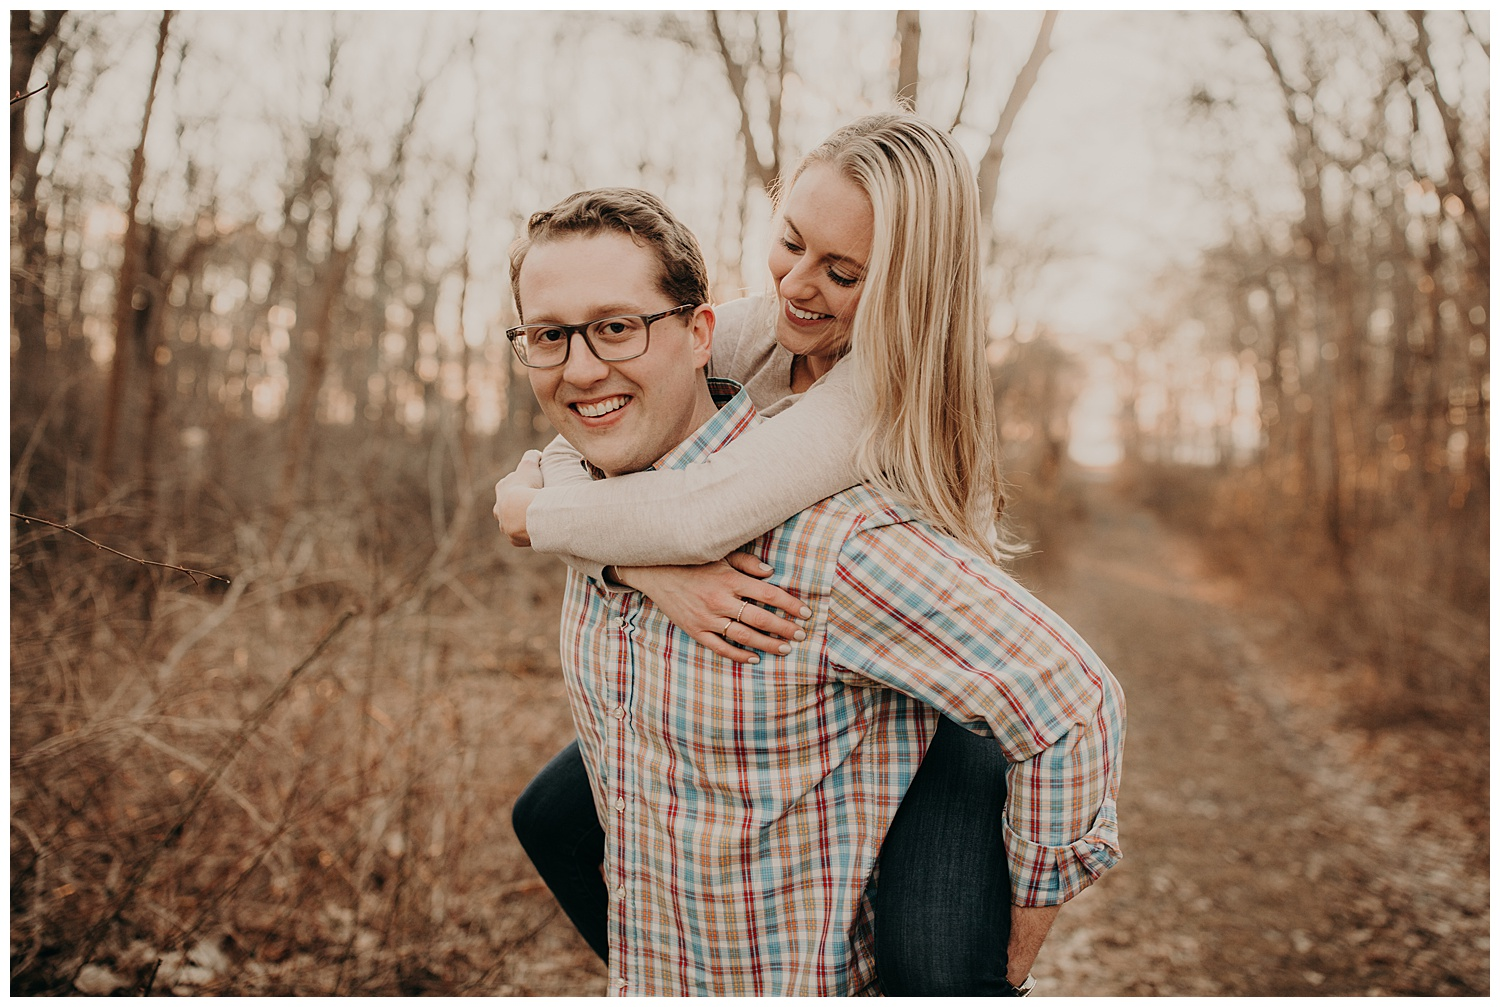 tyler-lauren-colt-state-park-winter-engagement-session-bristol-rhode-island22.jpg